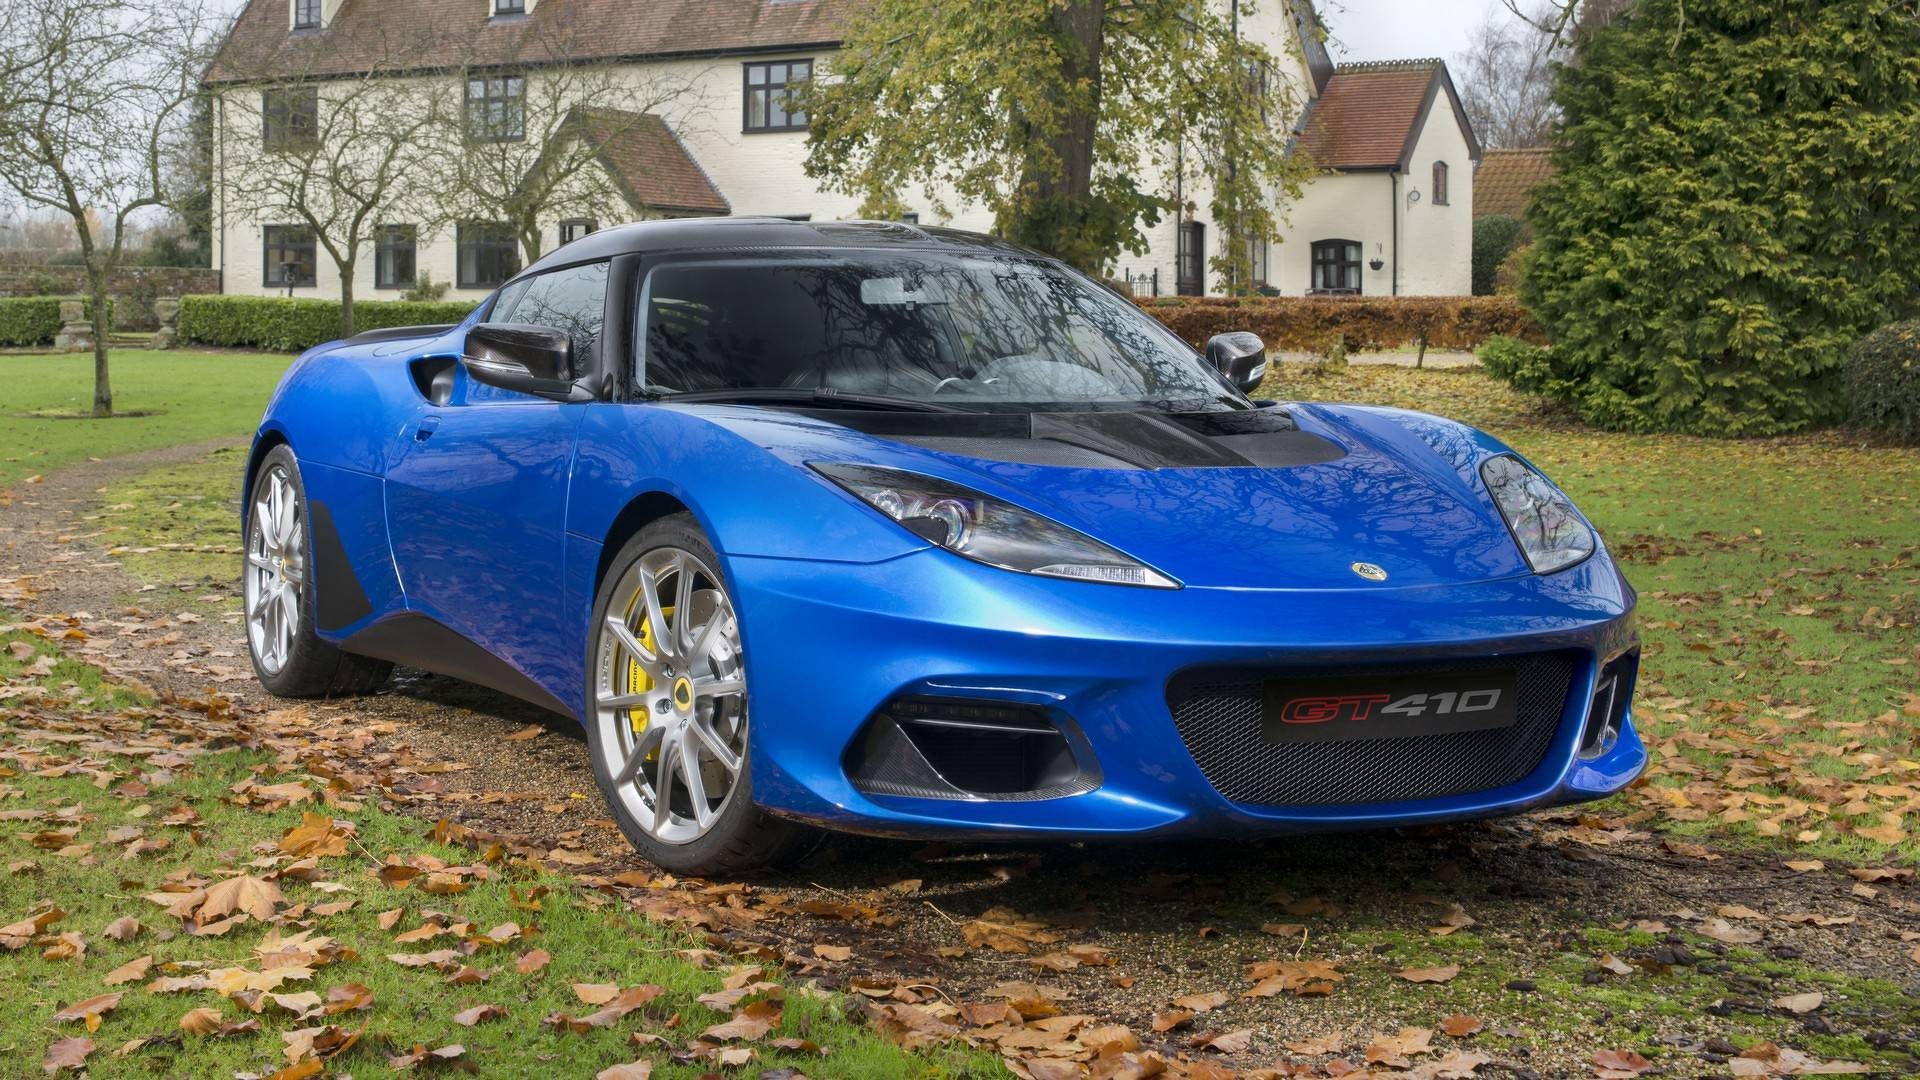 lotus plans two new sports cars for 2020 suv also in the pipeline autoevolution. Black Bedroom Furniture Sets. Home Design Ideas